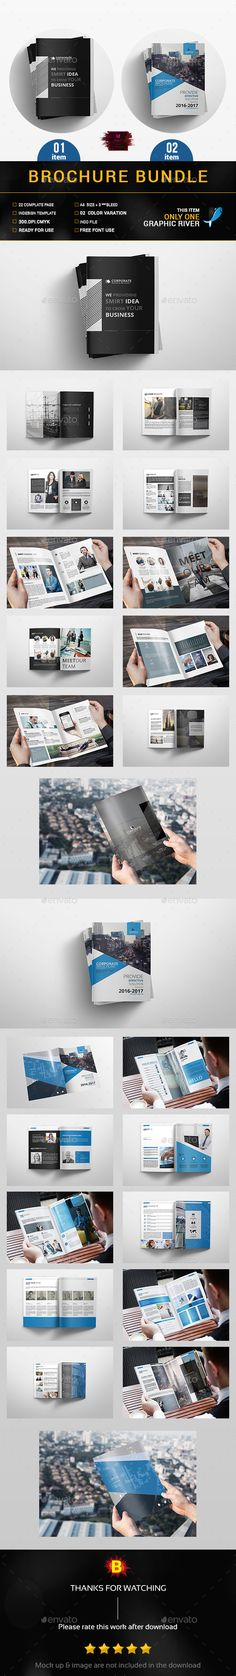 Brochure Bundle — InDesign INDD #company profile #corporate • Download ➝ https://graphicriver.net/item/brochure-bundle/19161136?ref=pxcr